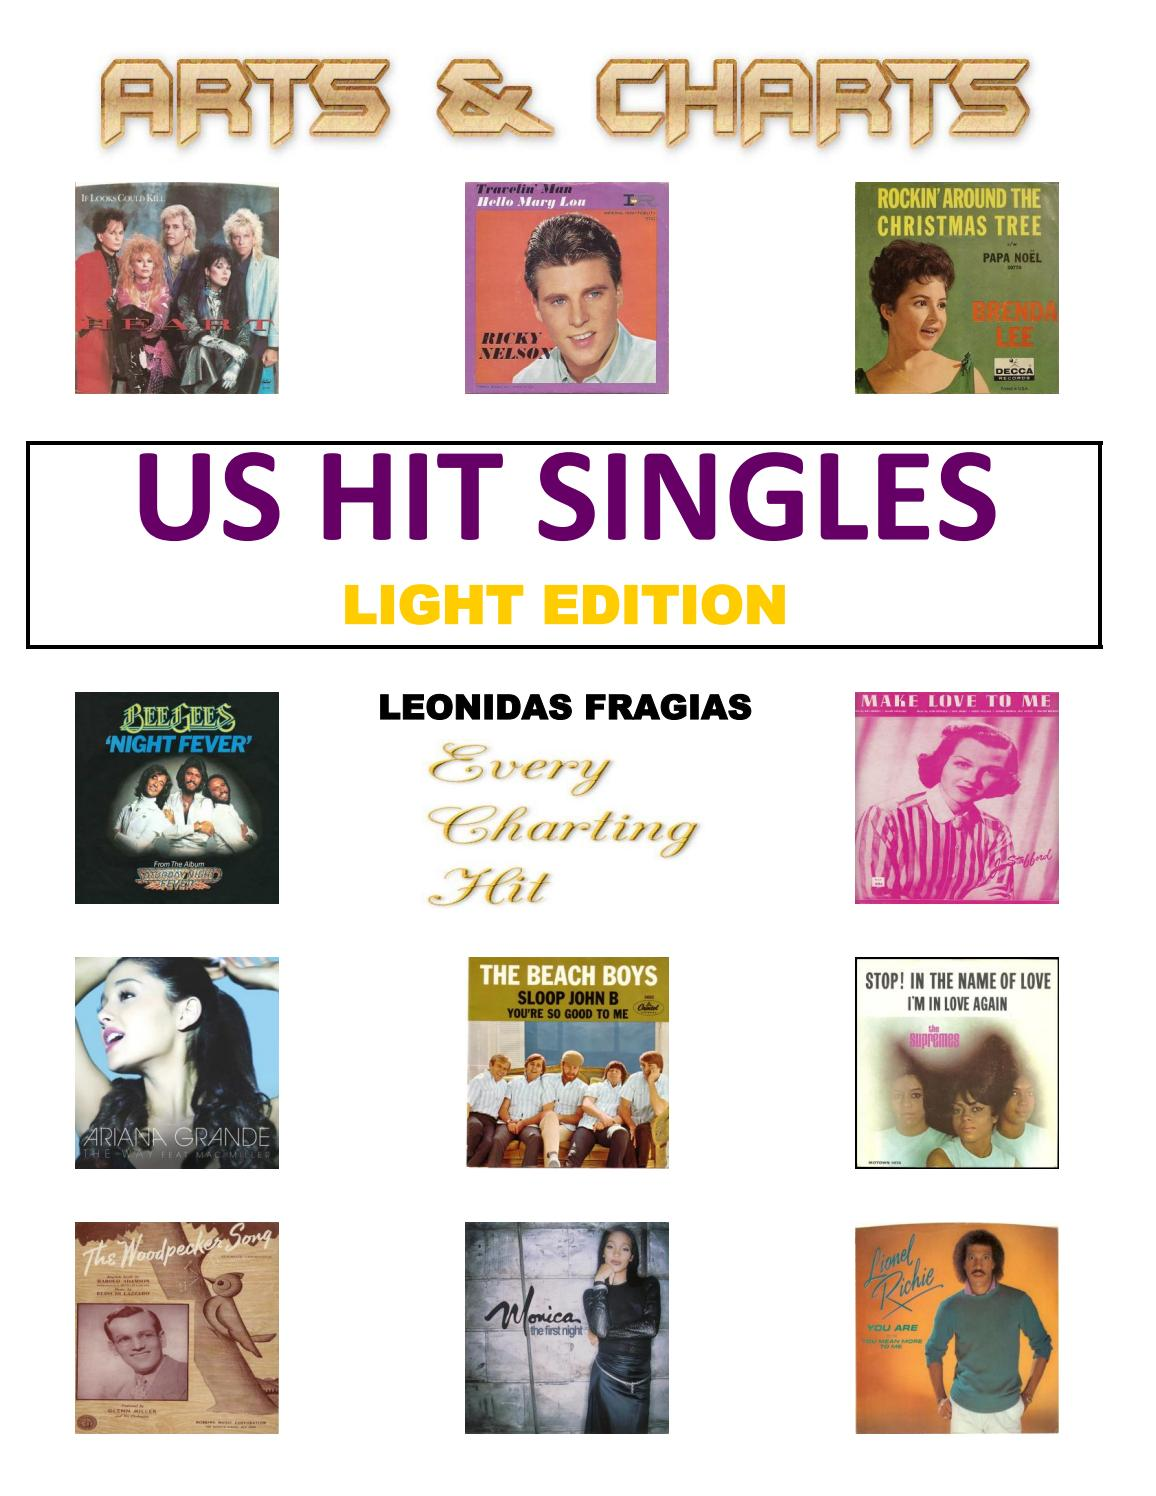 US Hit Singles (1st edition) by Leonidas Fragias (Arts & Charts) - issuu